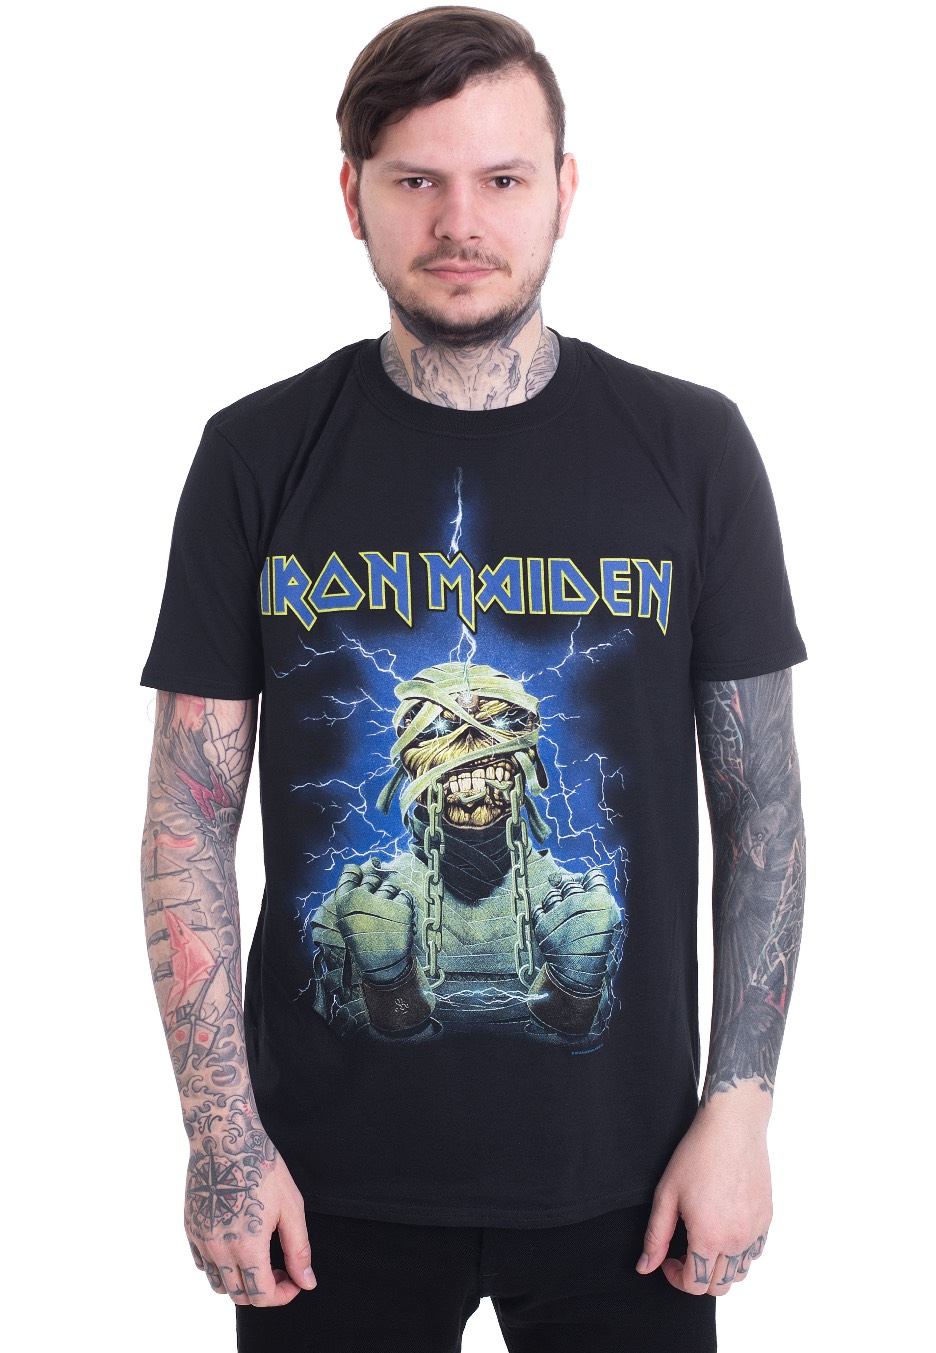 def8ad38d Iron Maiden - Powerslave Mummy - T-Shirt - Official Heavy Metal Merchandise  Shop - Impericon.com US